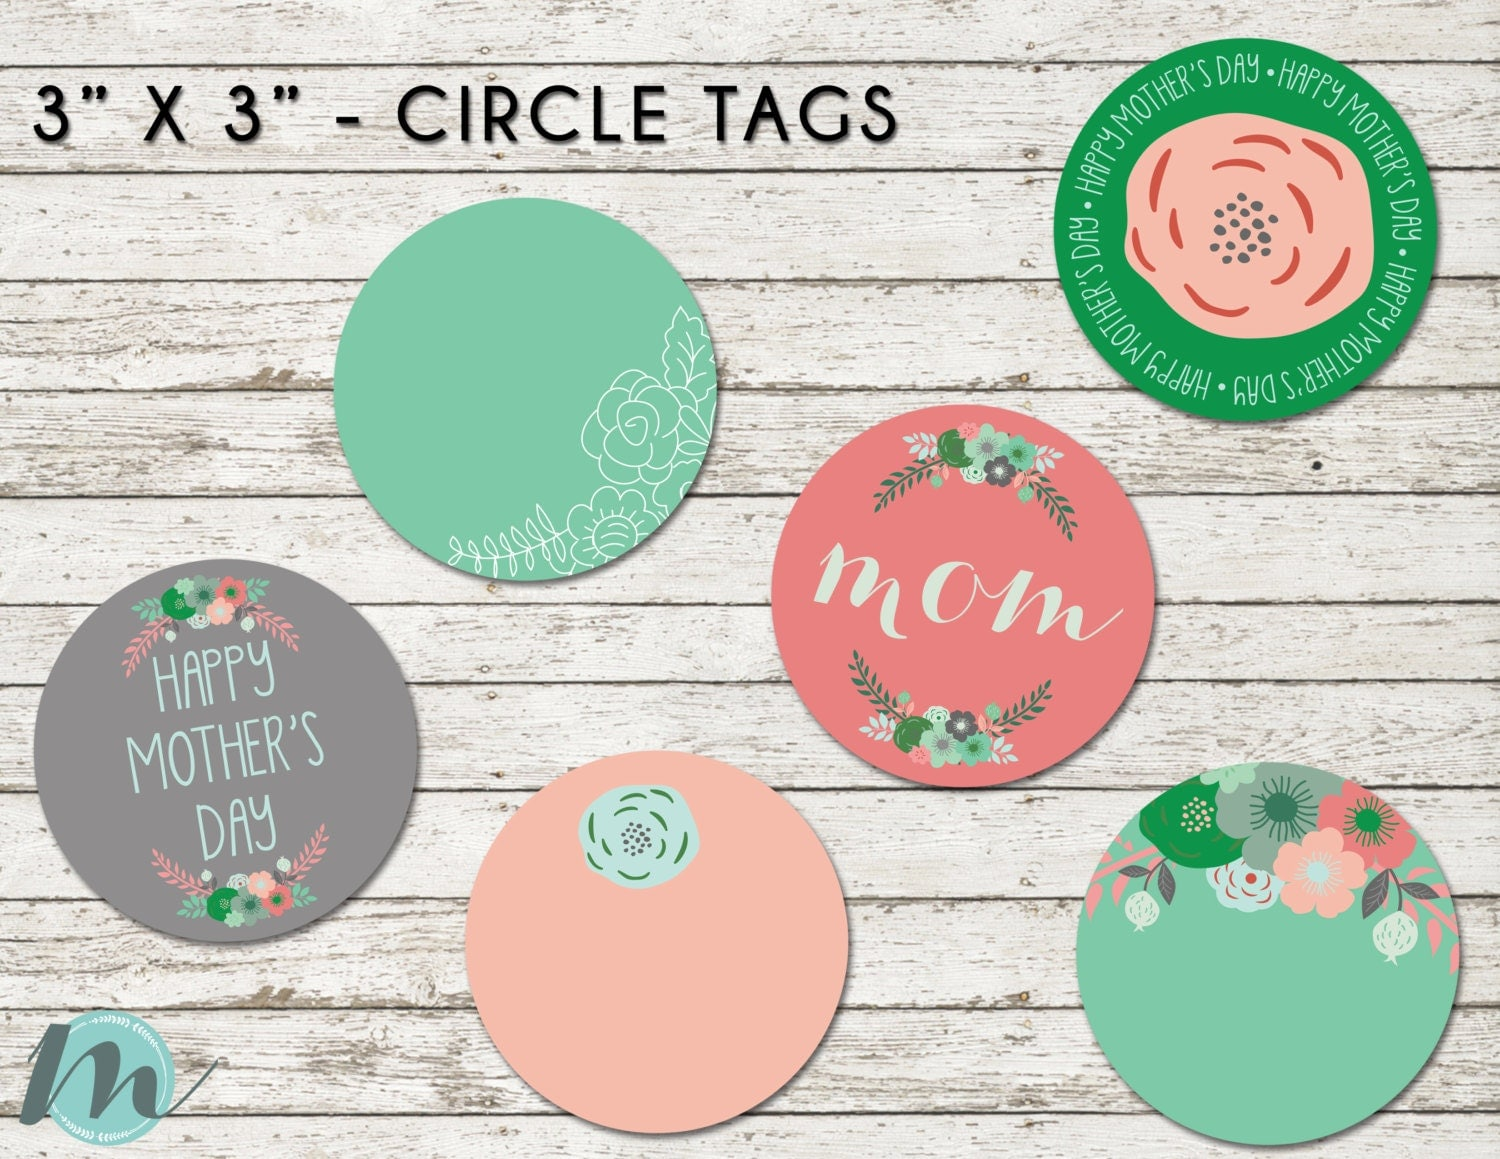 Mother S Day Tags: Happy Mother's Day, Mom, Gift Tags, Mother's Day Gift Tags